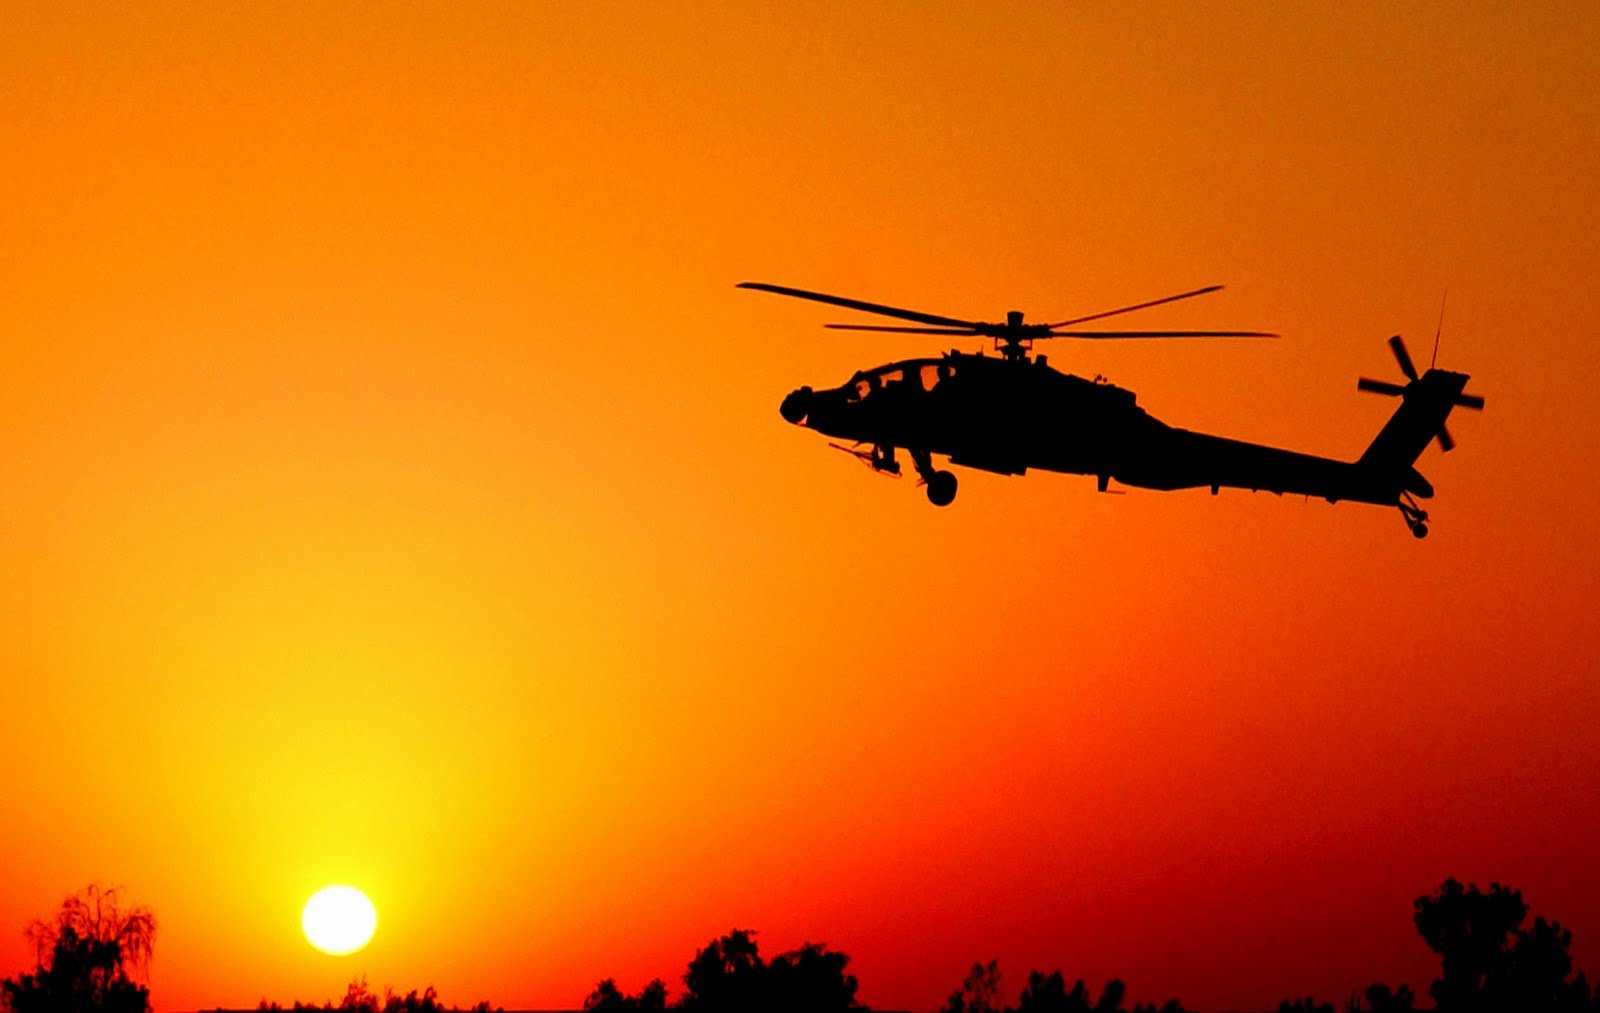 Apache Helicopters Sunset HD Wallpapers Desktop Wallpapers 1600x1013